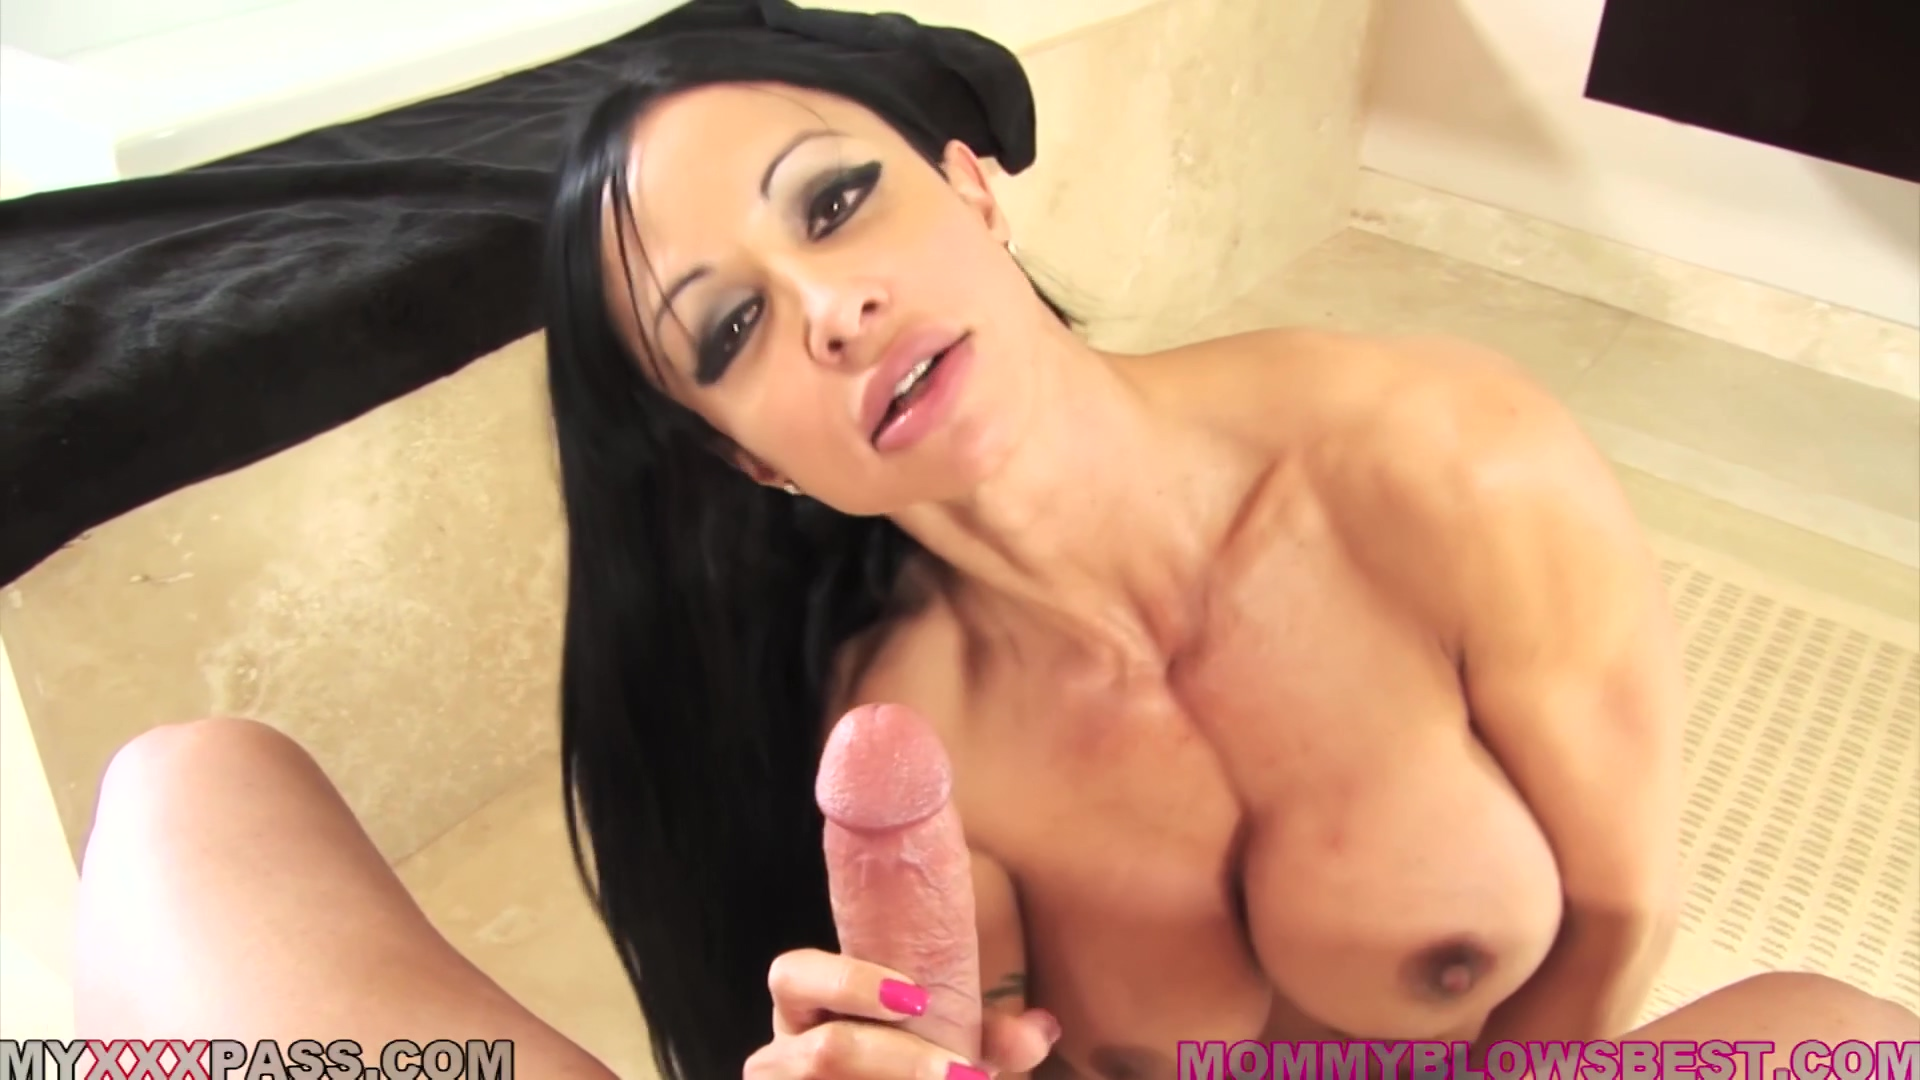 Jewels Jade is a MILF who loves sex